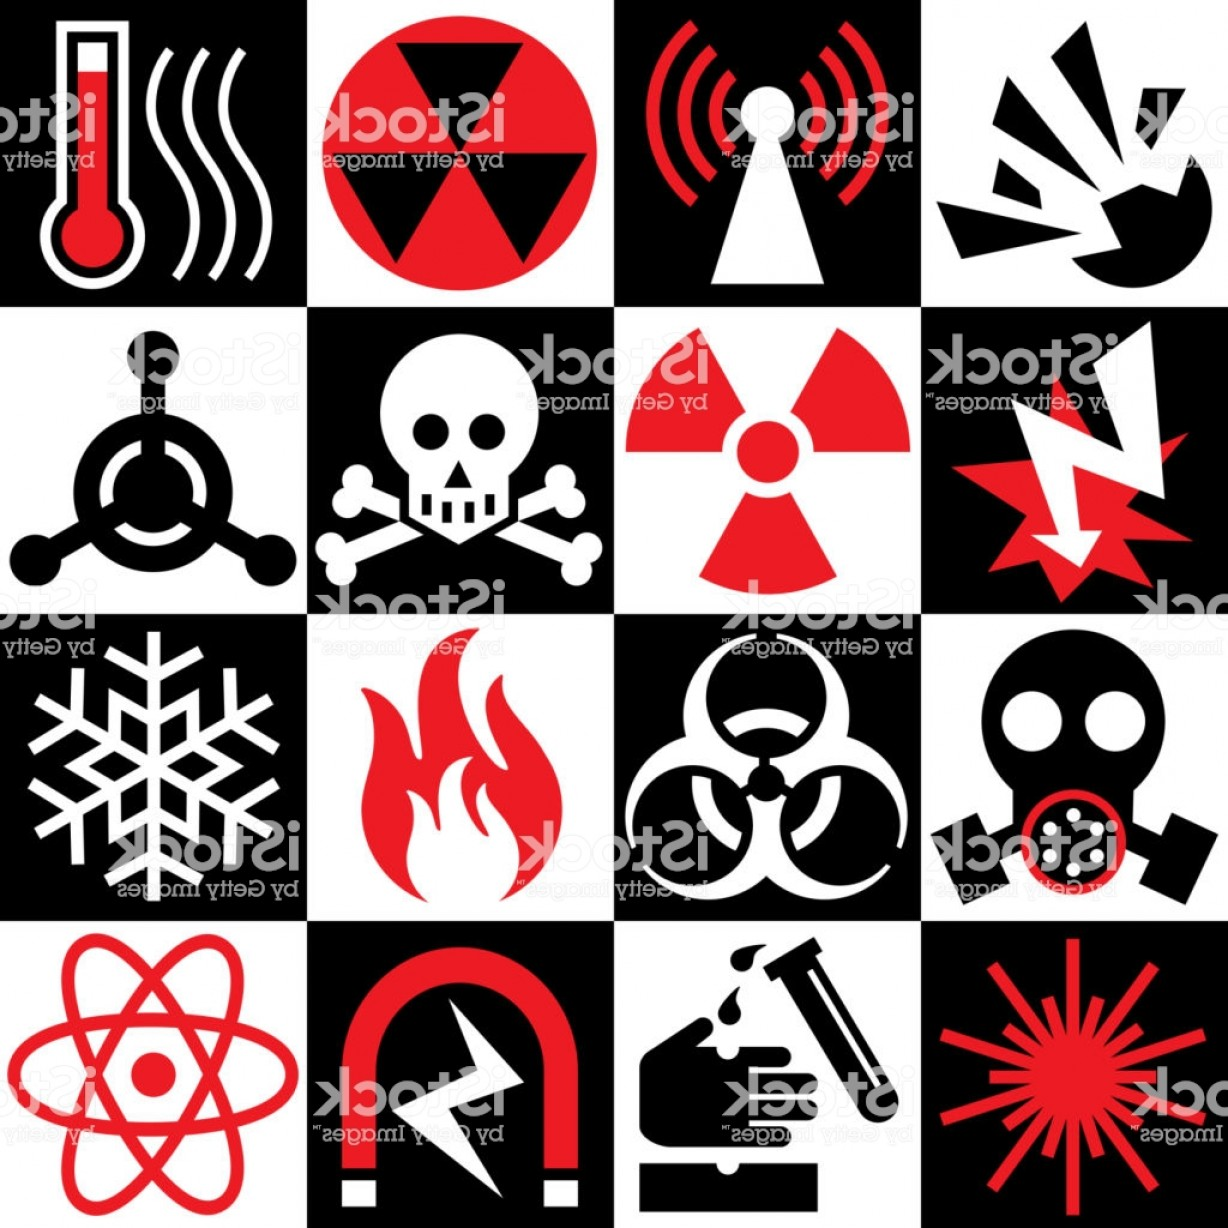 Red Black And White Vector Art: Hazard Warning Icons In Red Black And White Gm